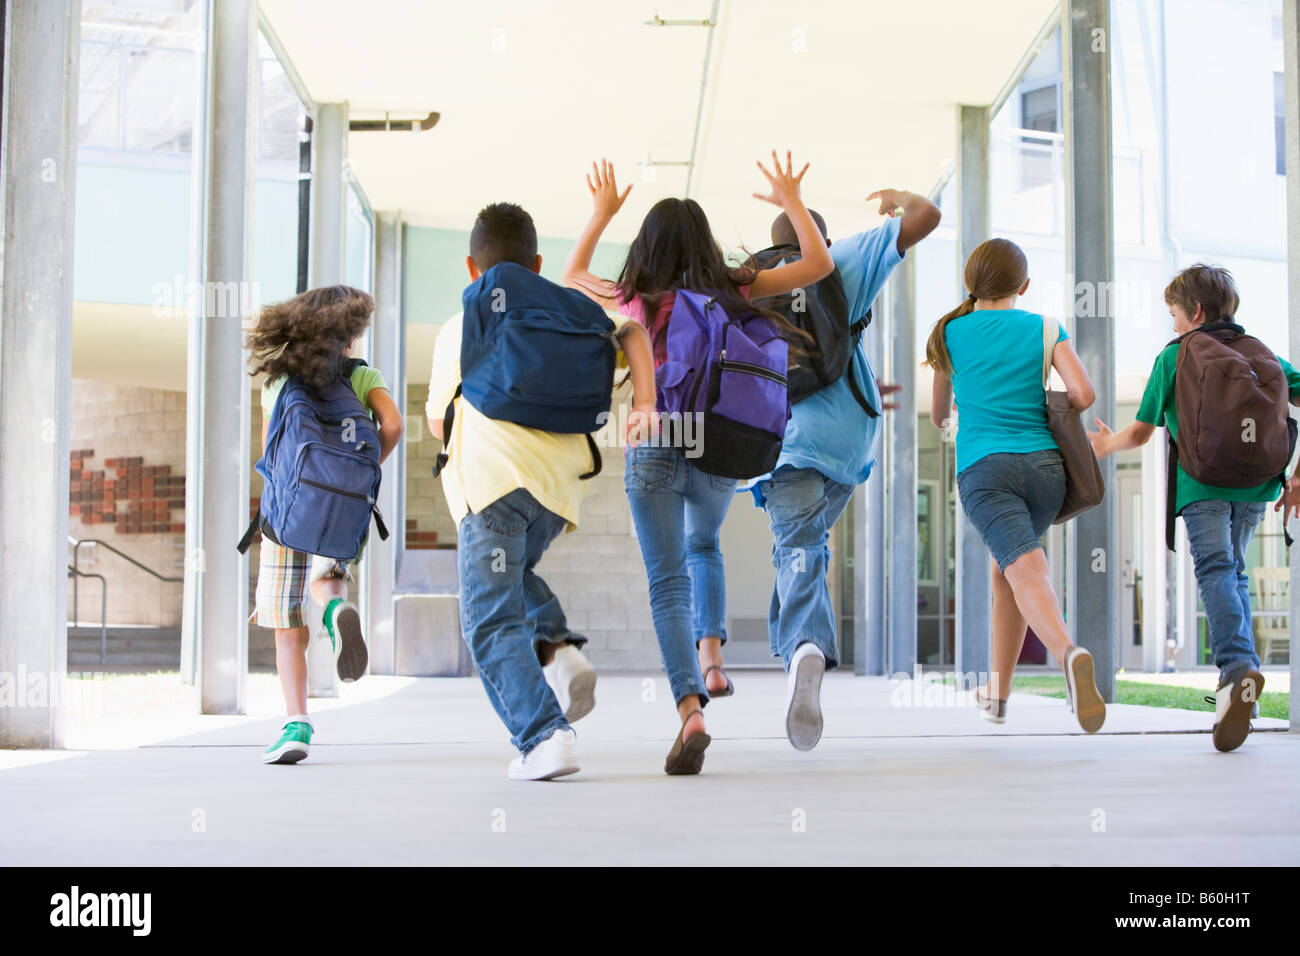 Six students running to front door of school excited - Stock Image